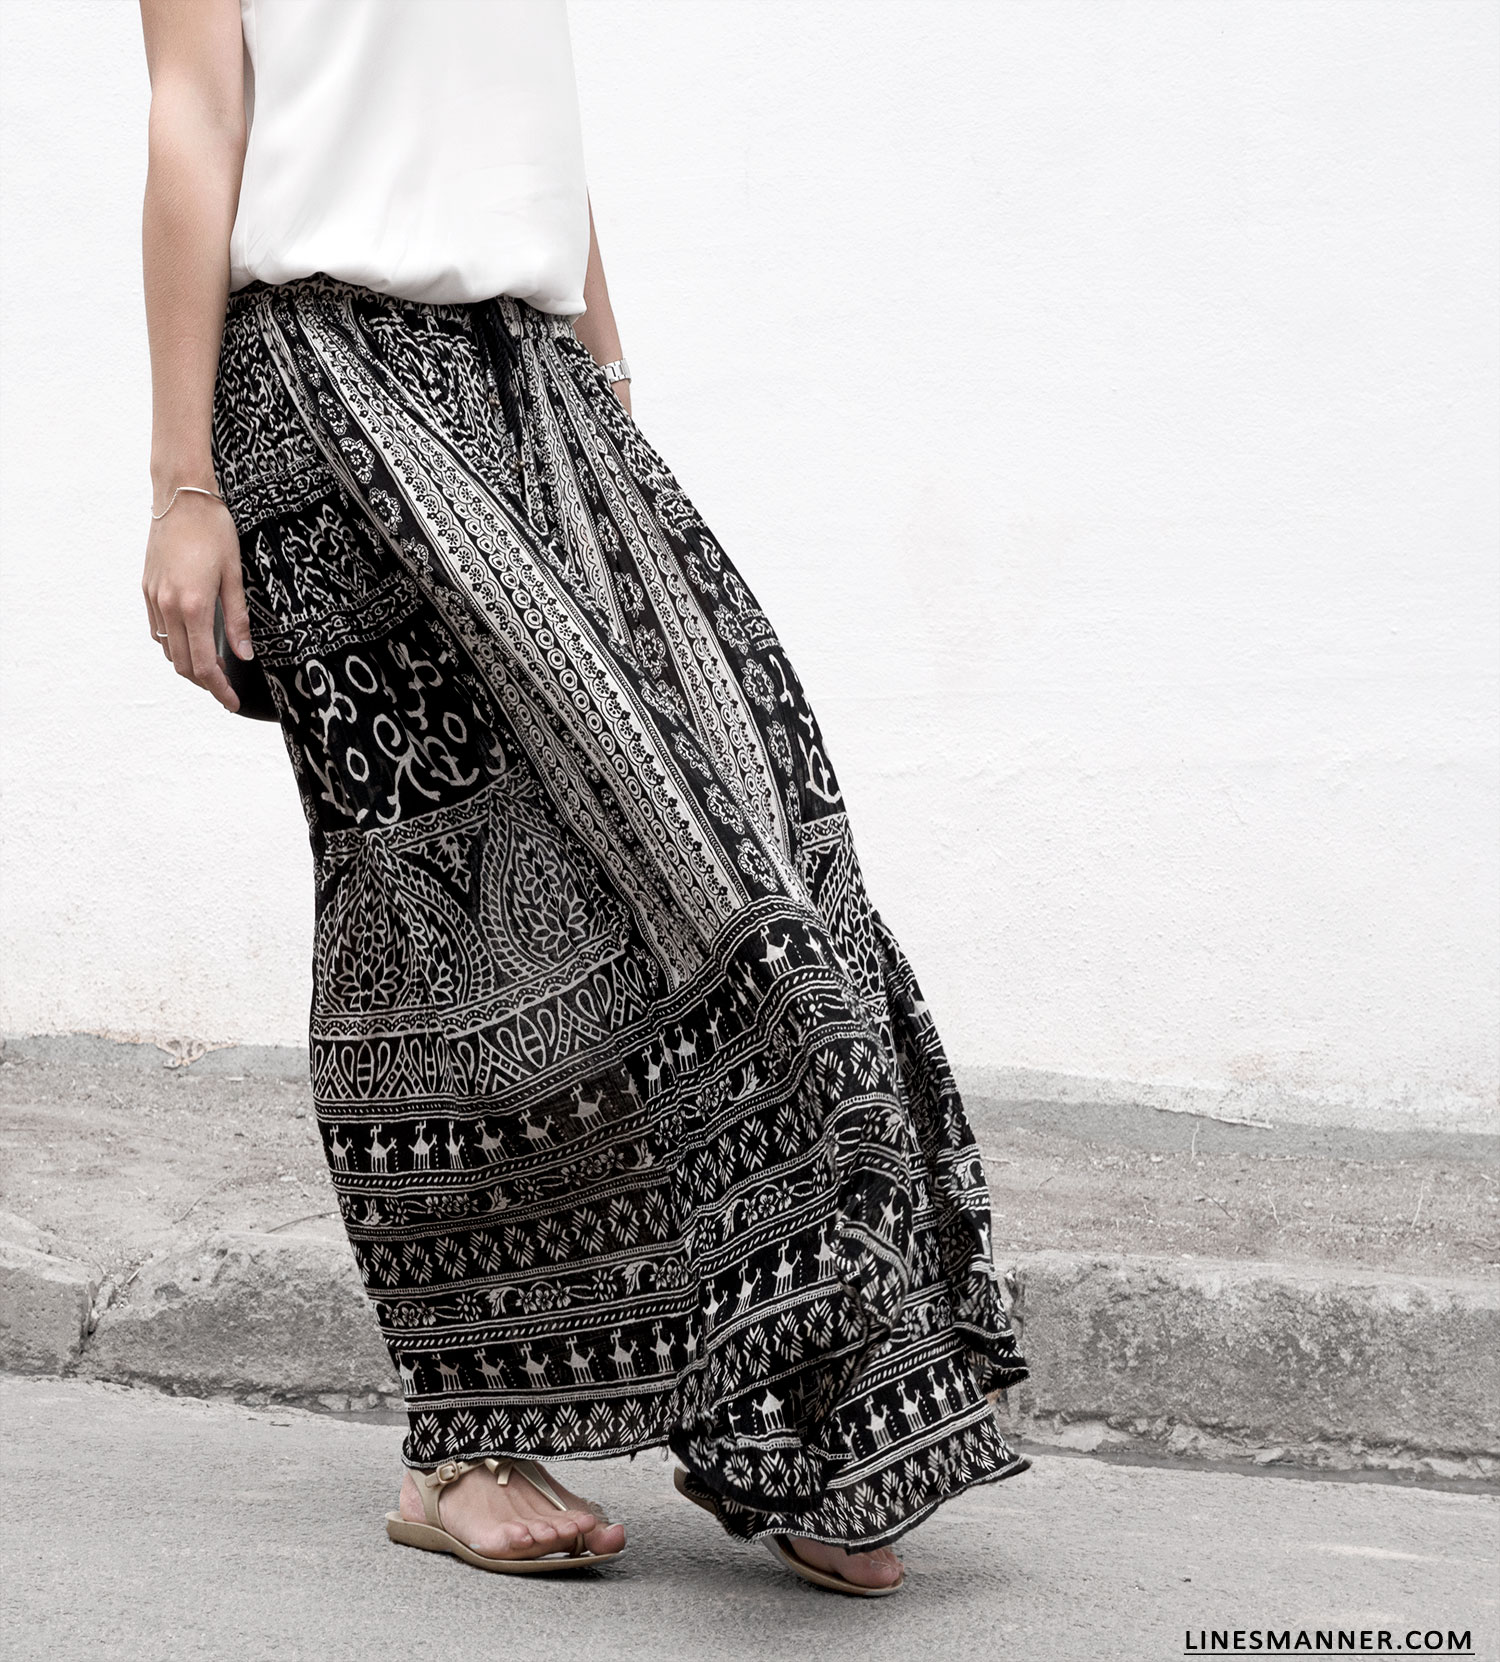 Lines-Manner-Tribal-Monochrome-Airy-Prints-Printed-Black_and_White-MVN-Details-Modern-5